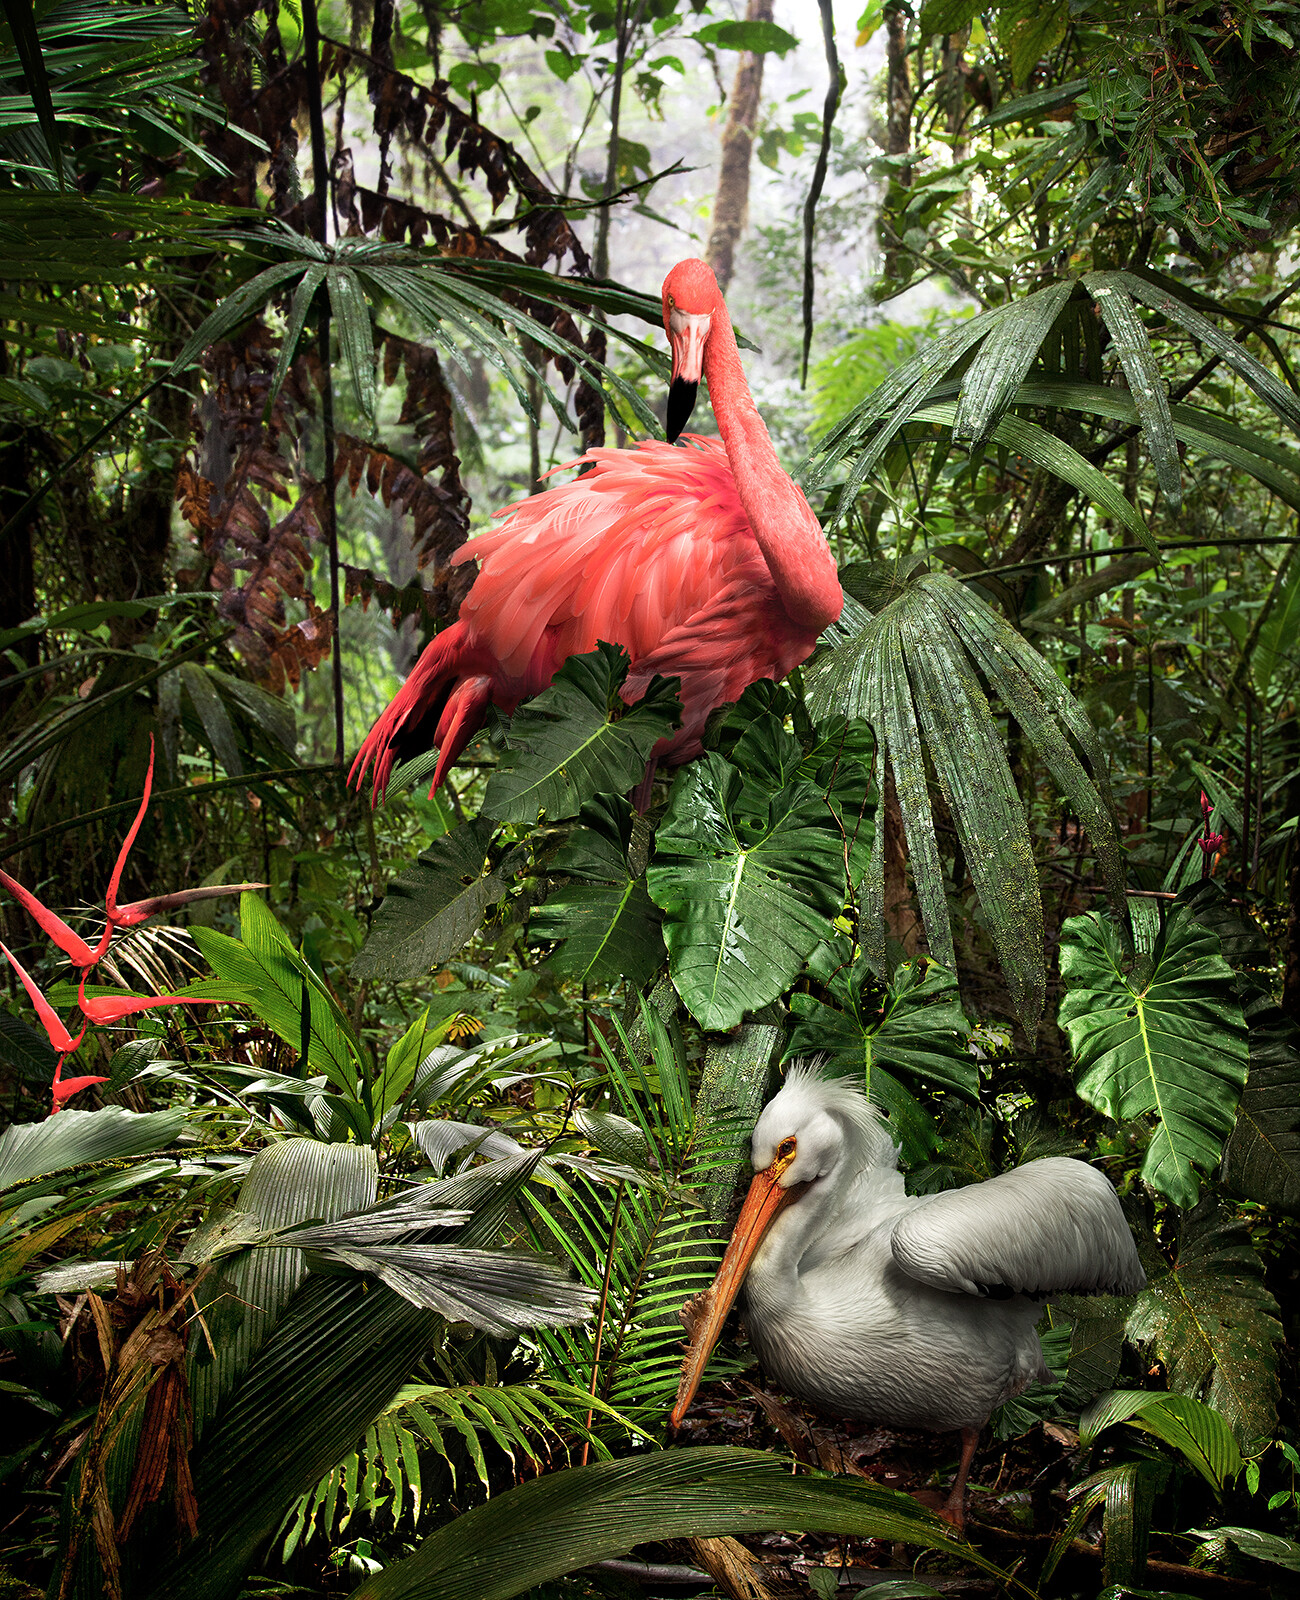 A Lost Flamingo and a Lost Pelican by Pat Swain